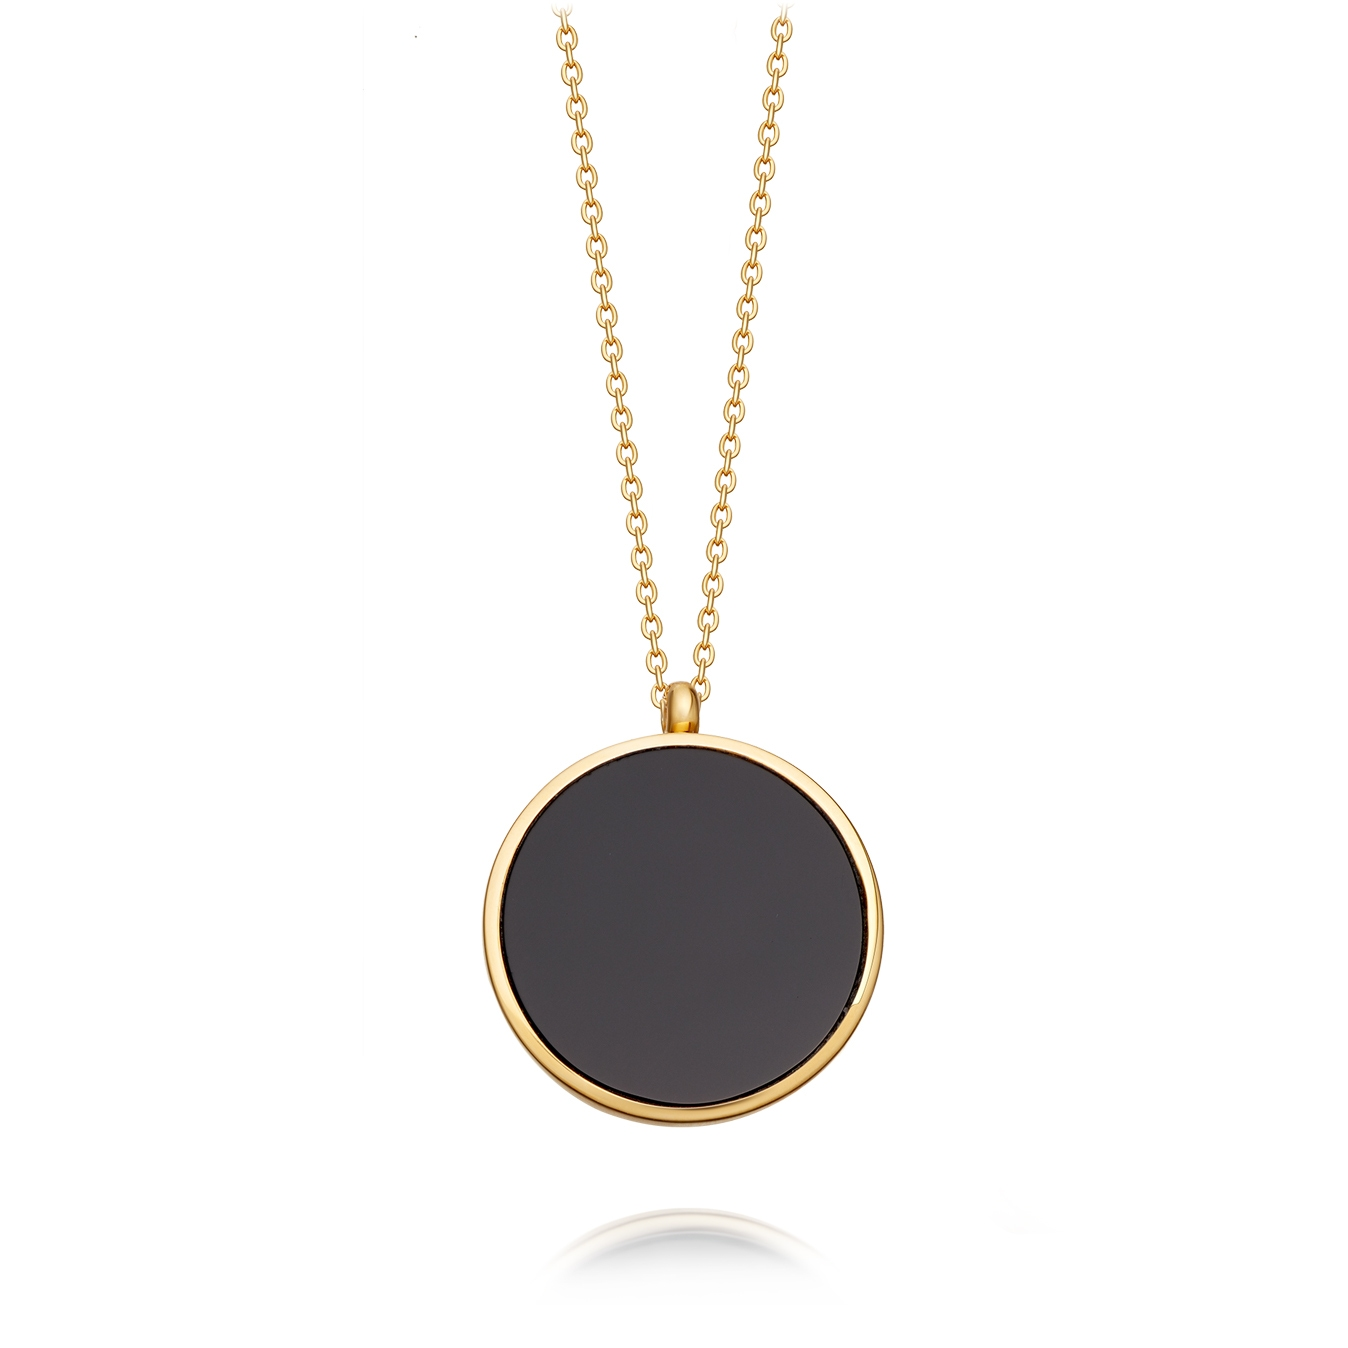 Stilla Gold Black Onyx Locket Necklace